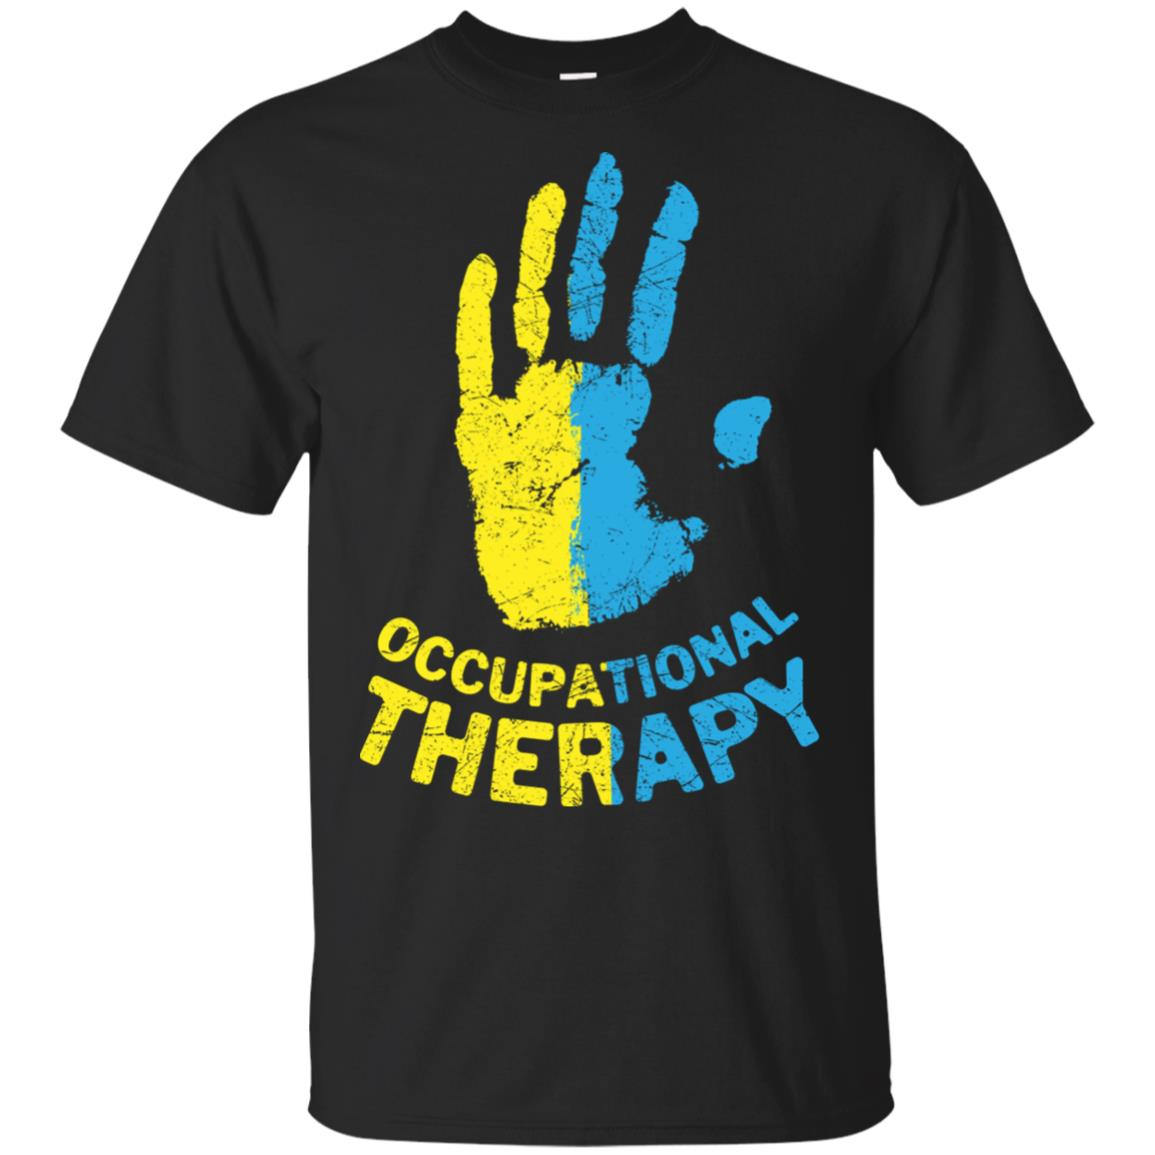 Occupational Therapy Healthcare Therapist Unisex Short Sleeve